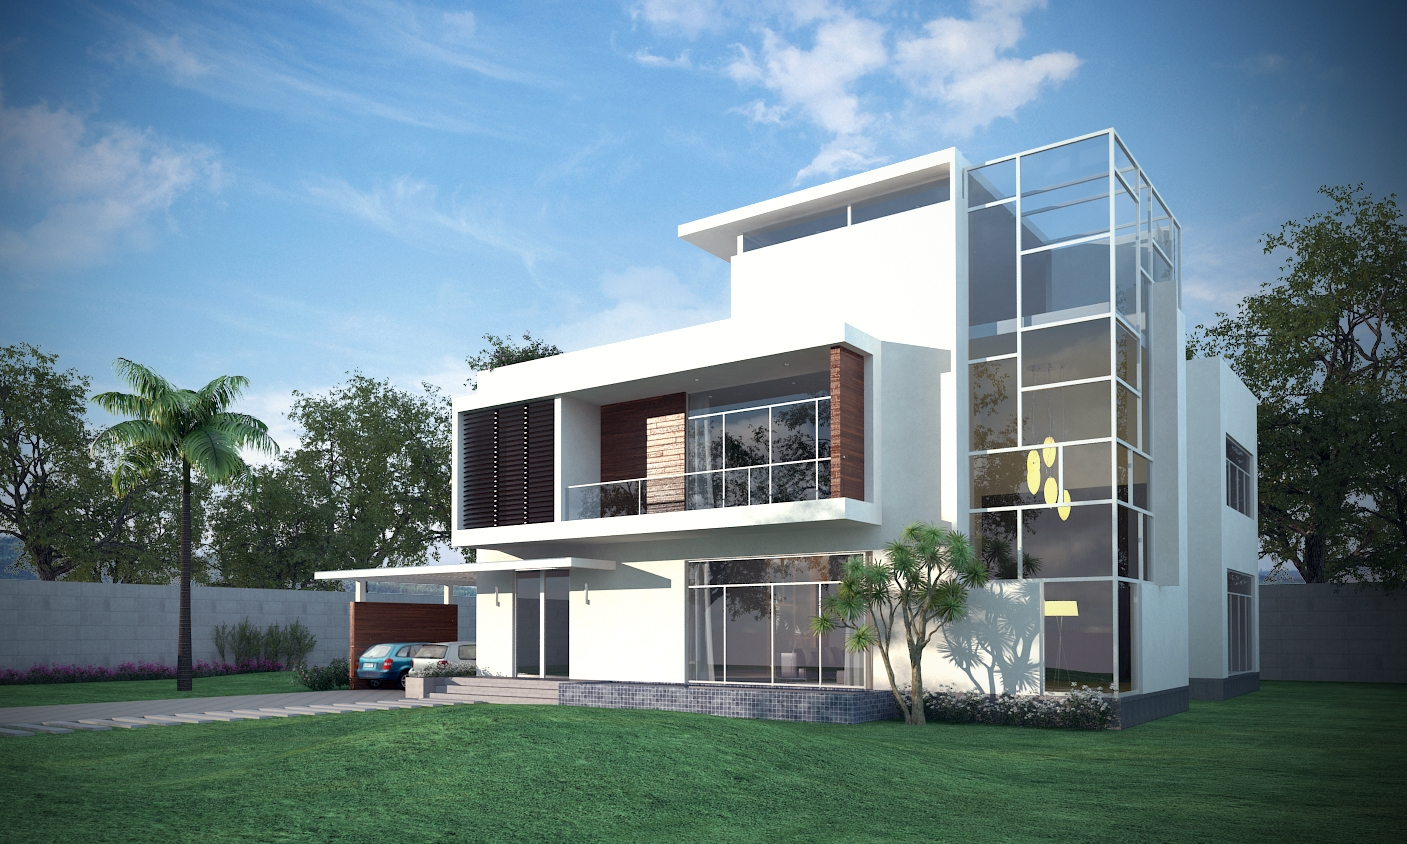 Luxury contemporary house 3d model for Exterior 3d model